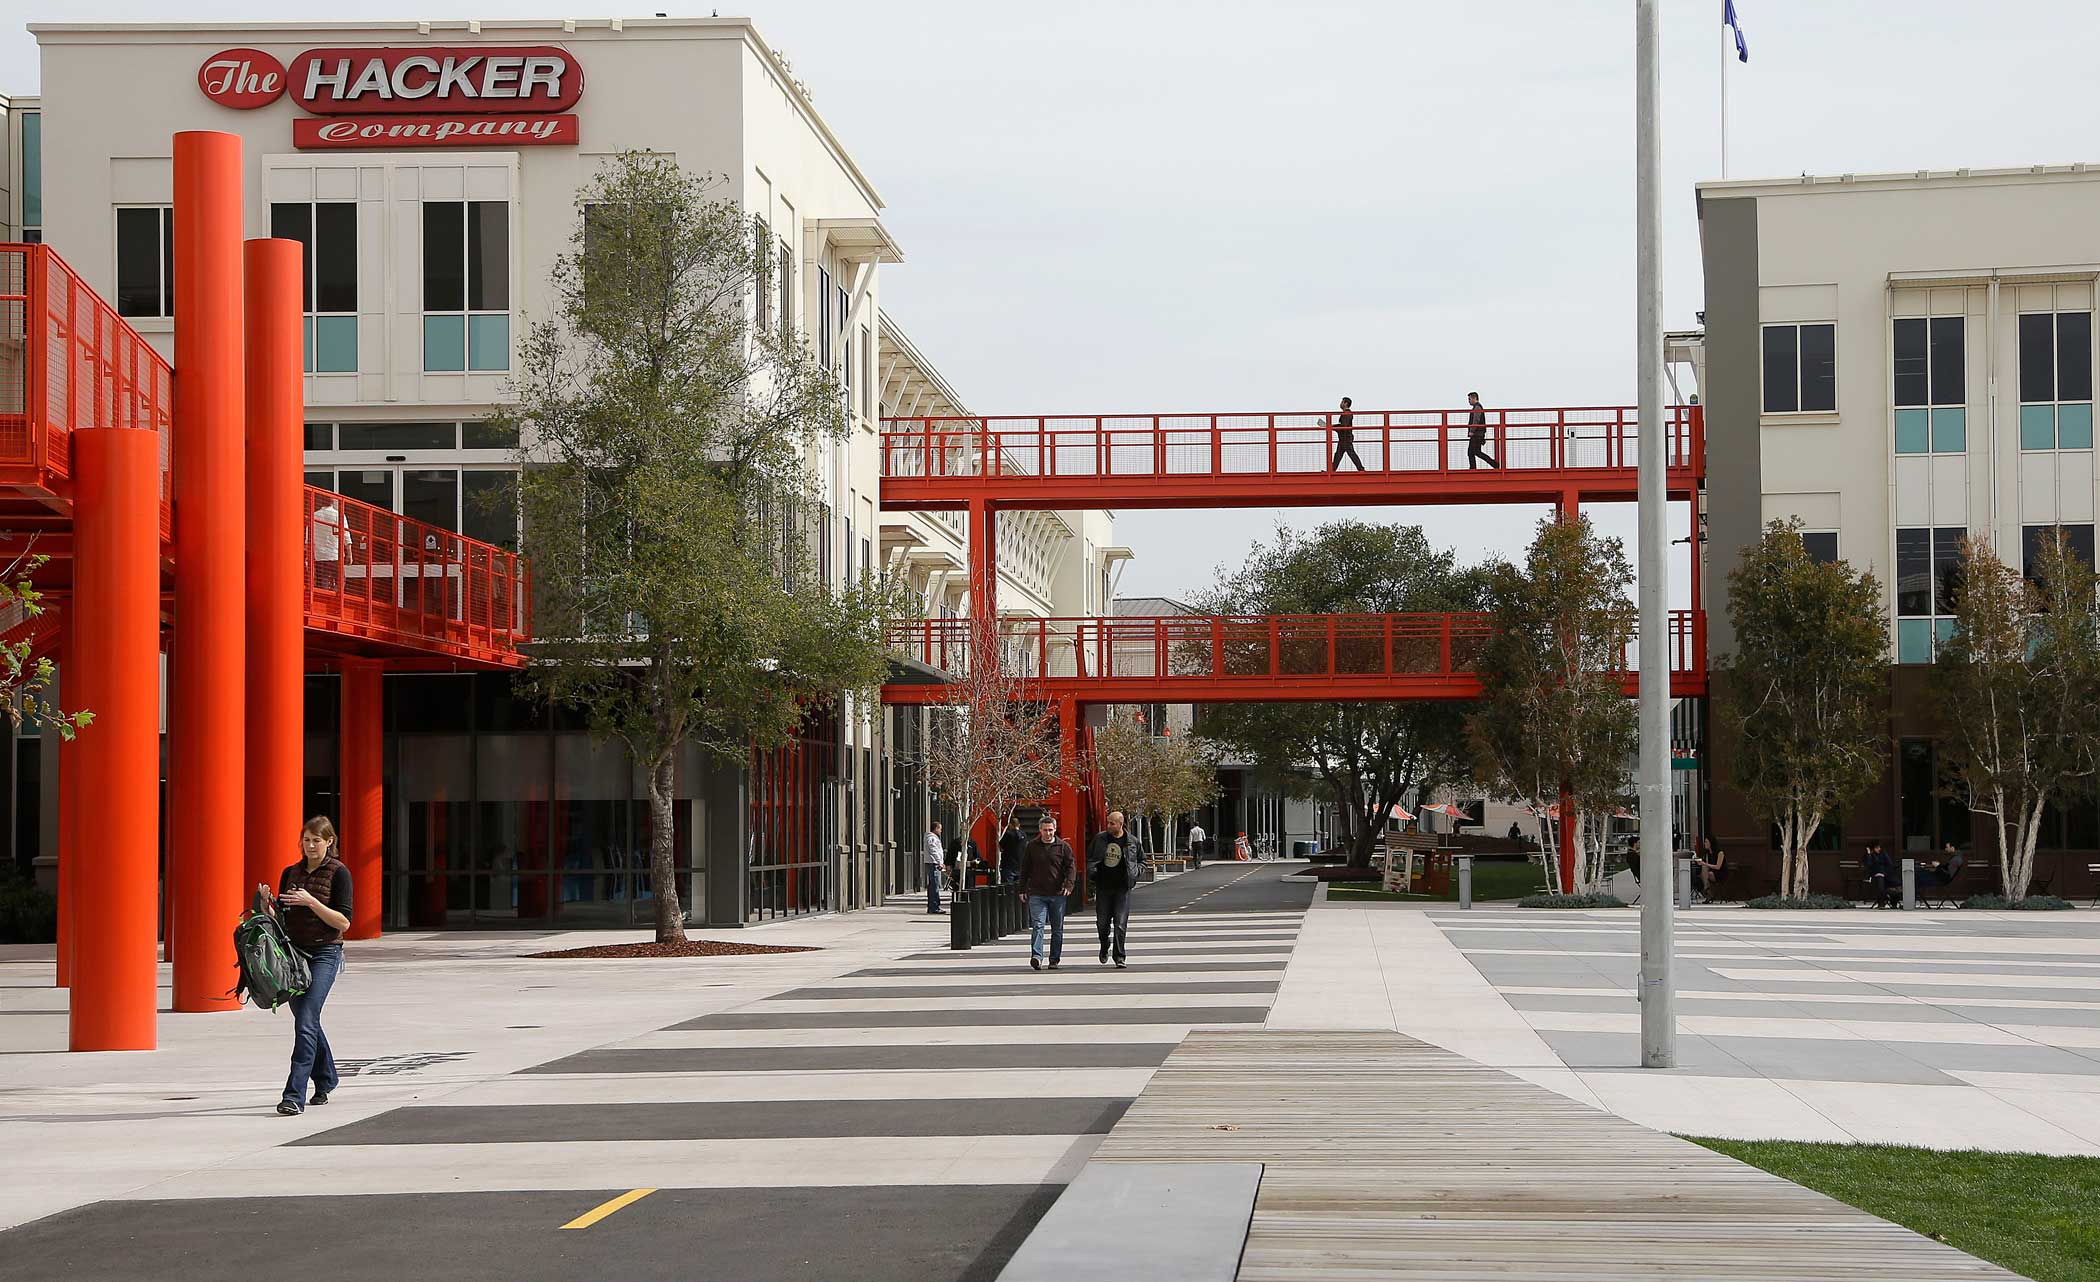 "<strong>Main Headquarters: </strong>Facebook employees are shown on the campus below the famous sign ""The Hacker Company""."